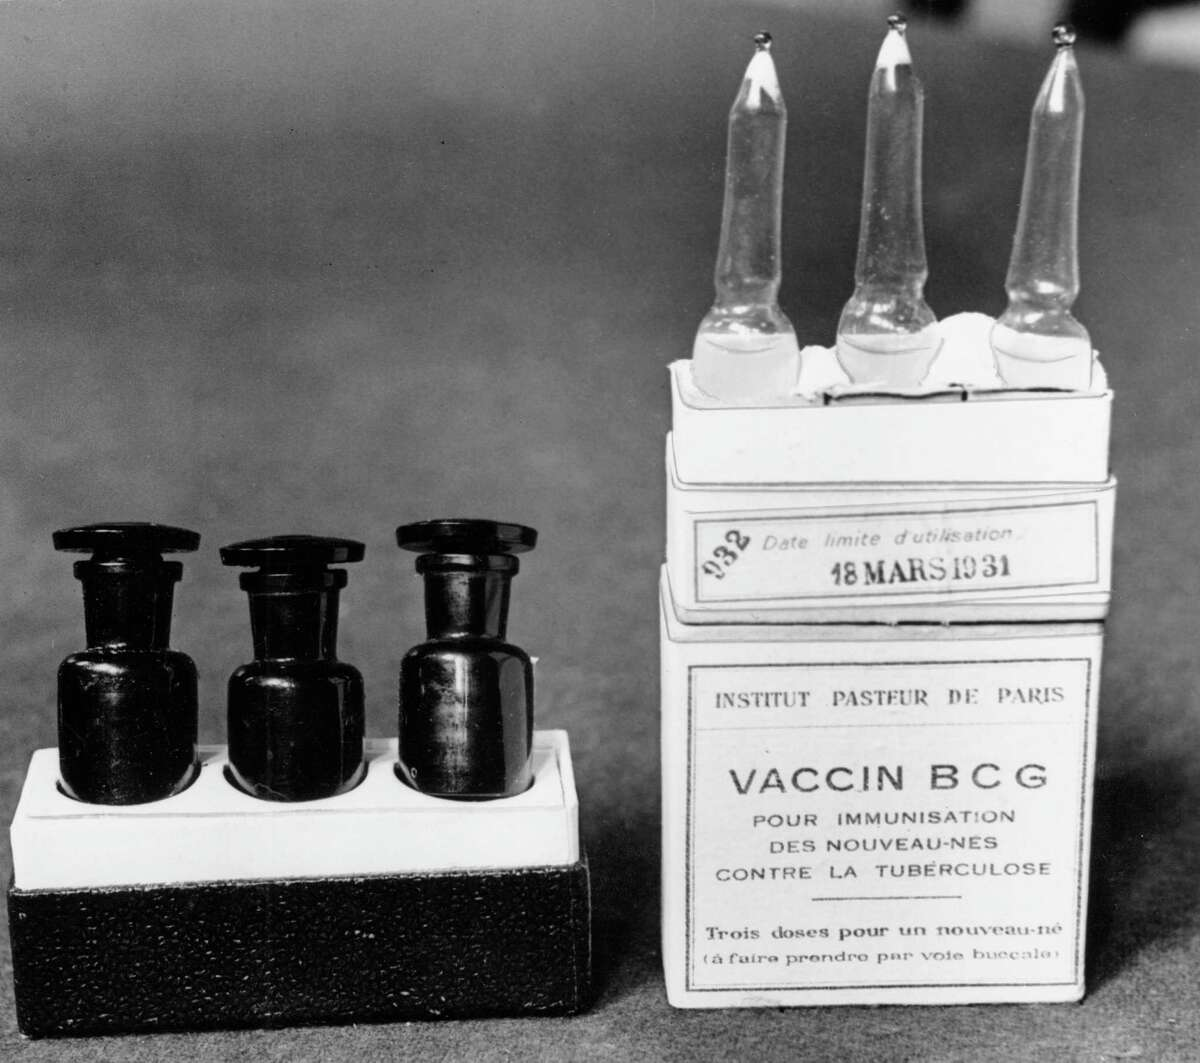 Scientists are dusting off some decades-old vaccines against TB and polio to see if they could provide stopgap protection against COVID-19 until a more precise shot arrives.This March 1931 file photo shows ampules of the BCG vaccine against tuberculosis in a laboratory at the Institute Pasteur in Paris, France.